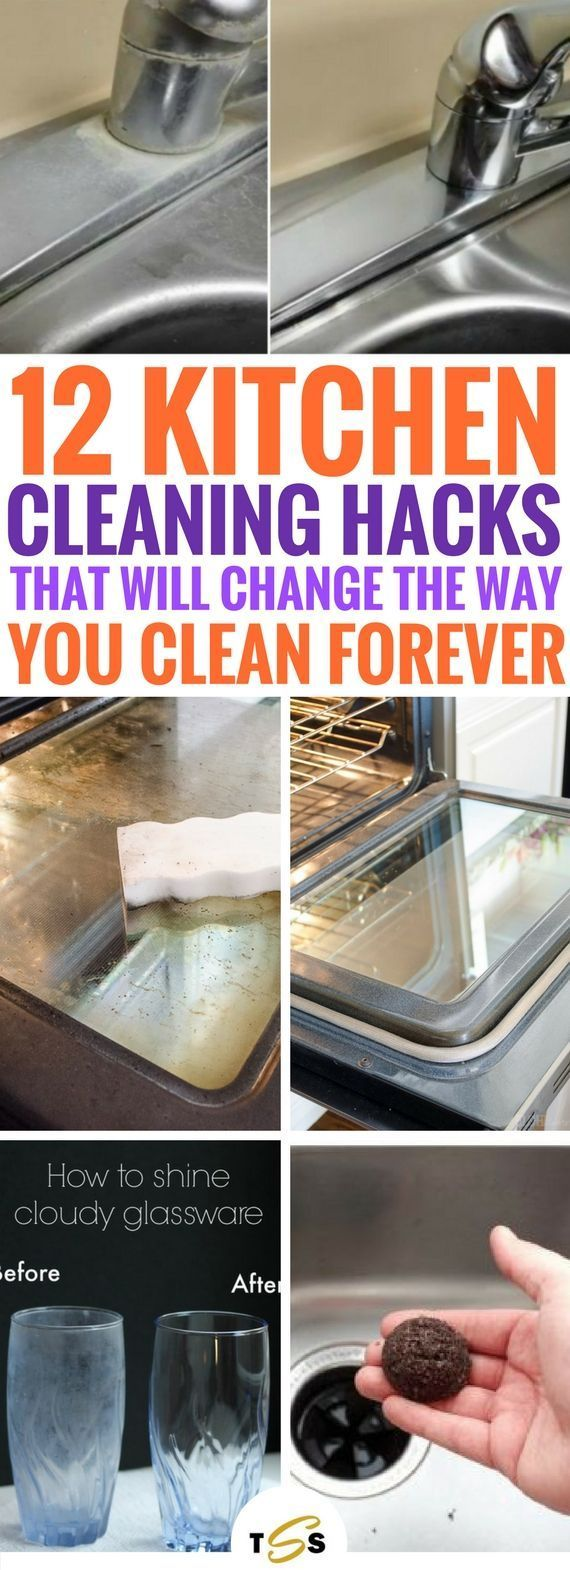 12 Kitchen Cleaning Hacks For A Clean Kitchen – Microwave Oven – Ideas of Microw…